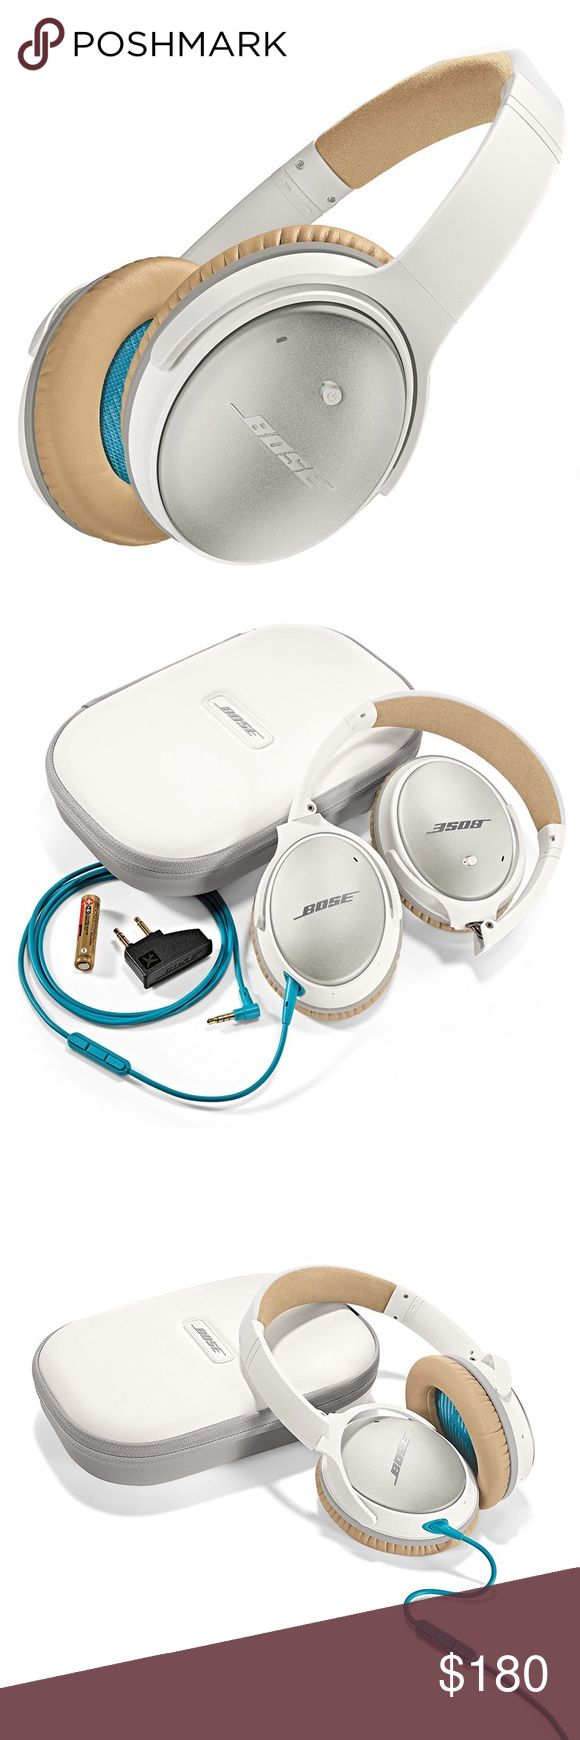 Bose QuietComfort NoiseCancelling Headphones Super cute acoustic headphones with noise reduction for travel, work and anywhere in between. Comes with carrying case. There are no scratches but ear phones show gentle wear. Bose Other